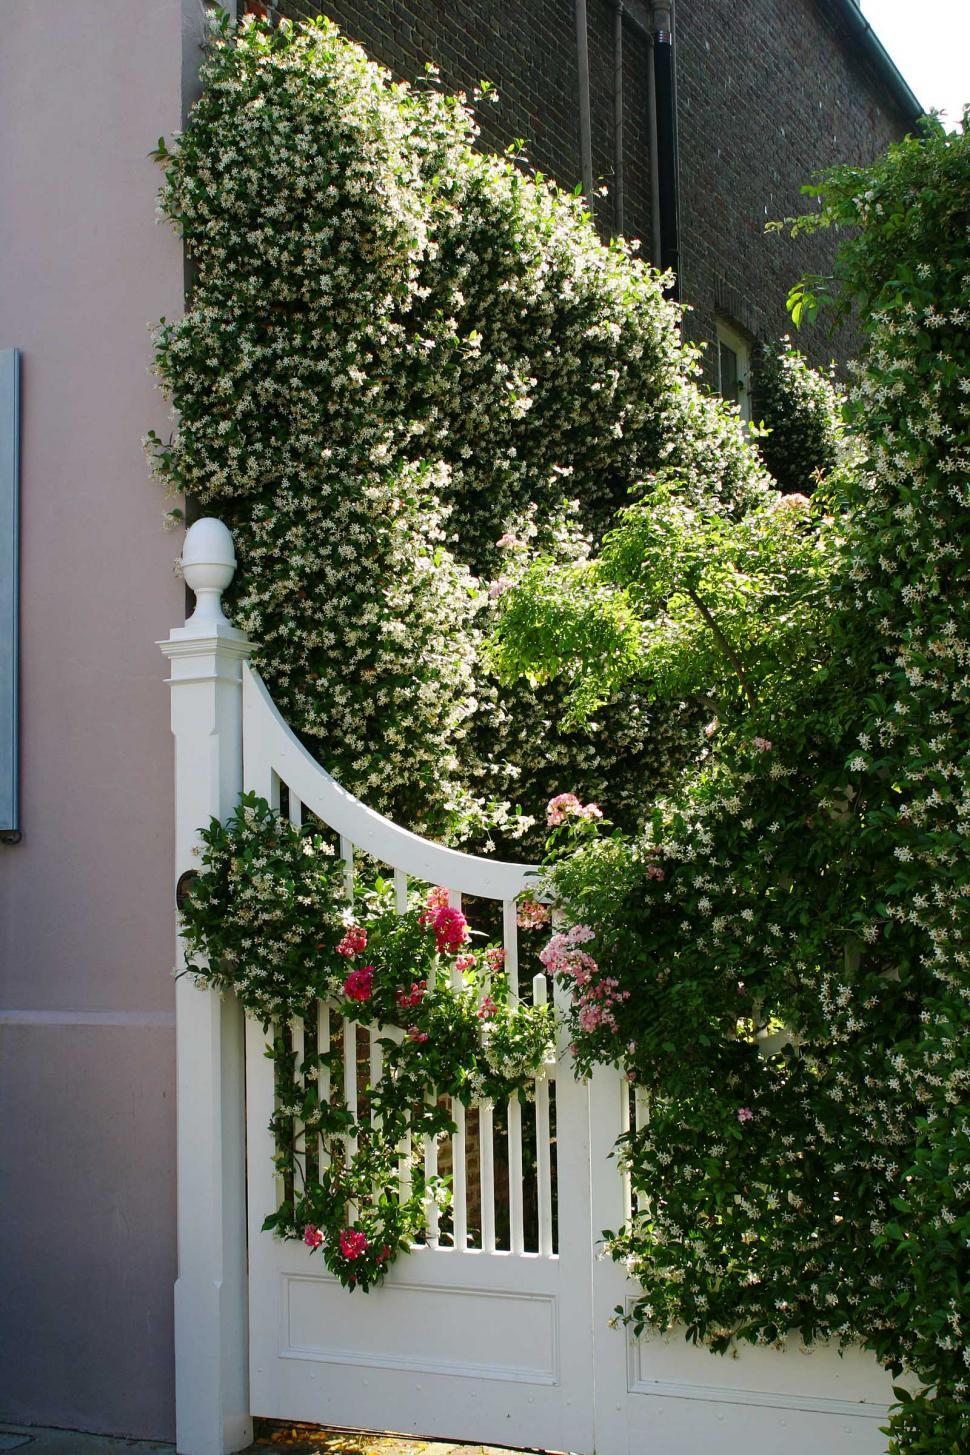 Download Free Stock HD Photo of vines and gate Online